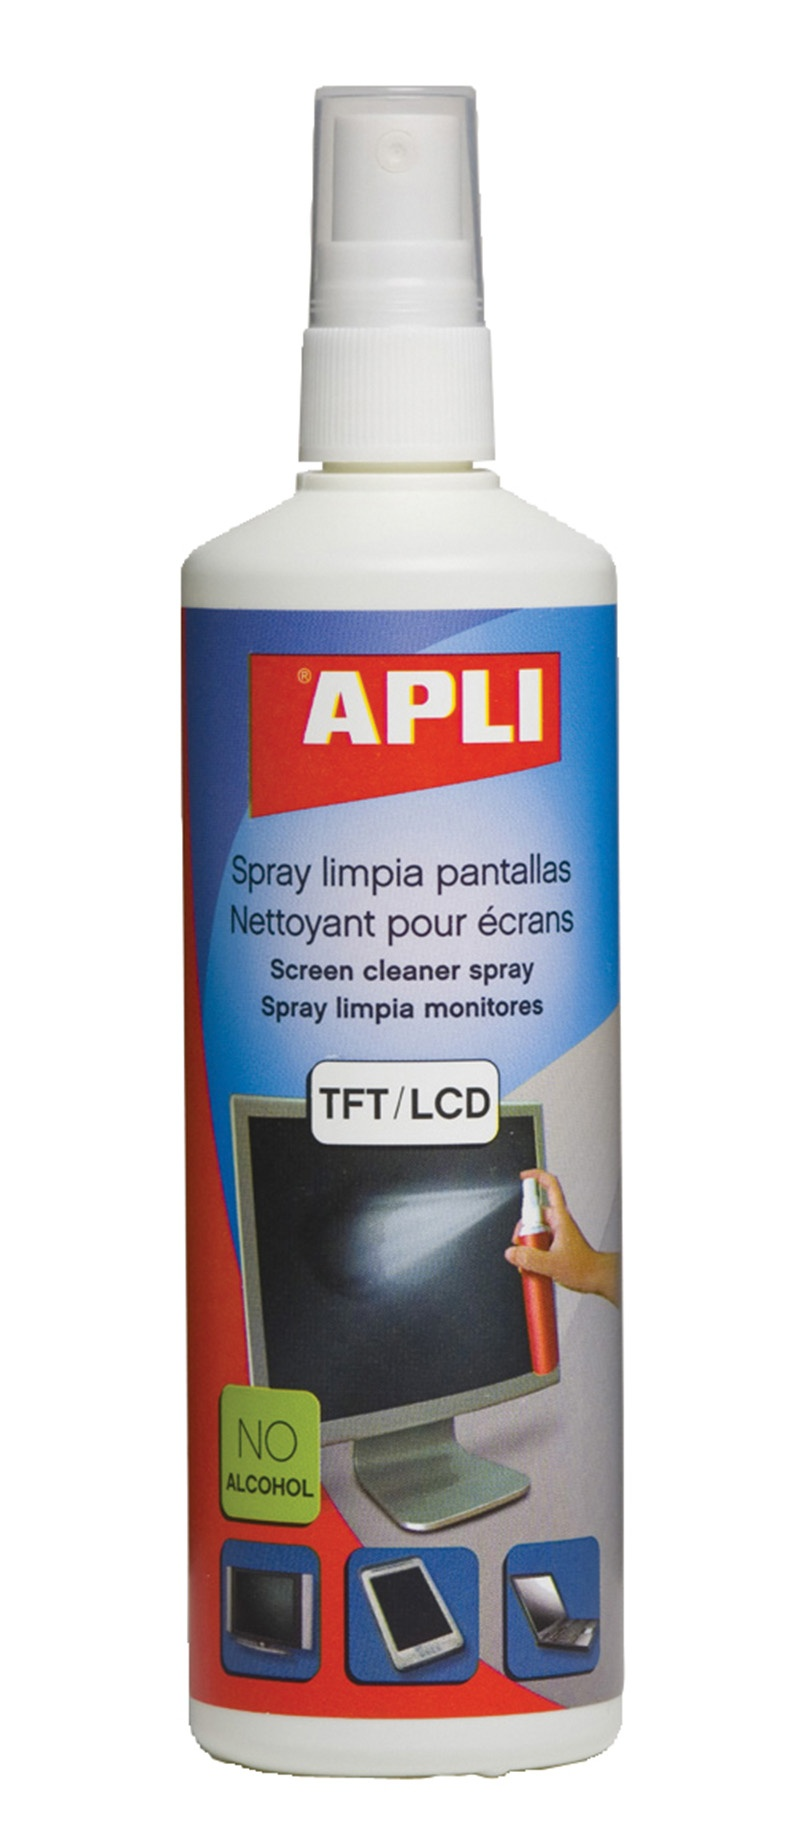 Screen Cleaner Spray TFT/LCD APLI, 250ml